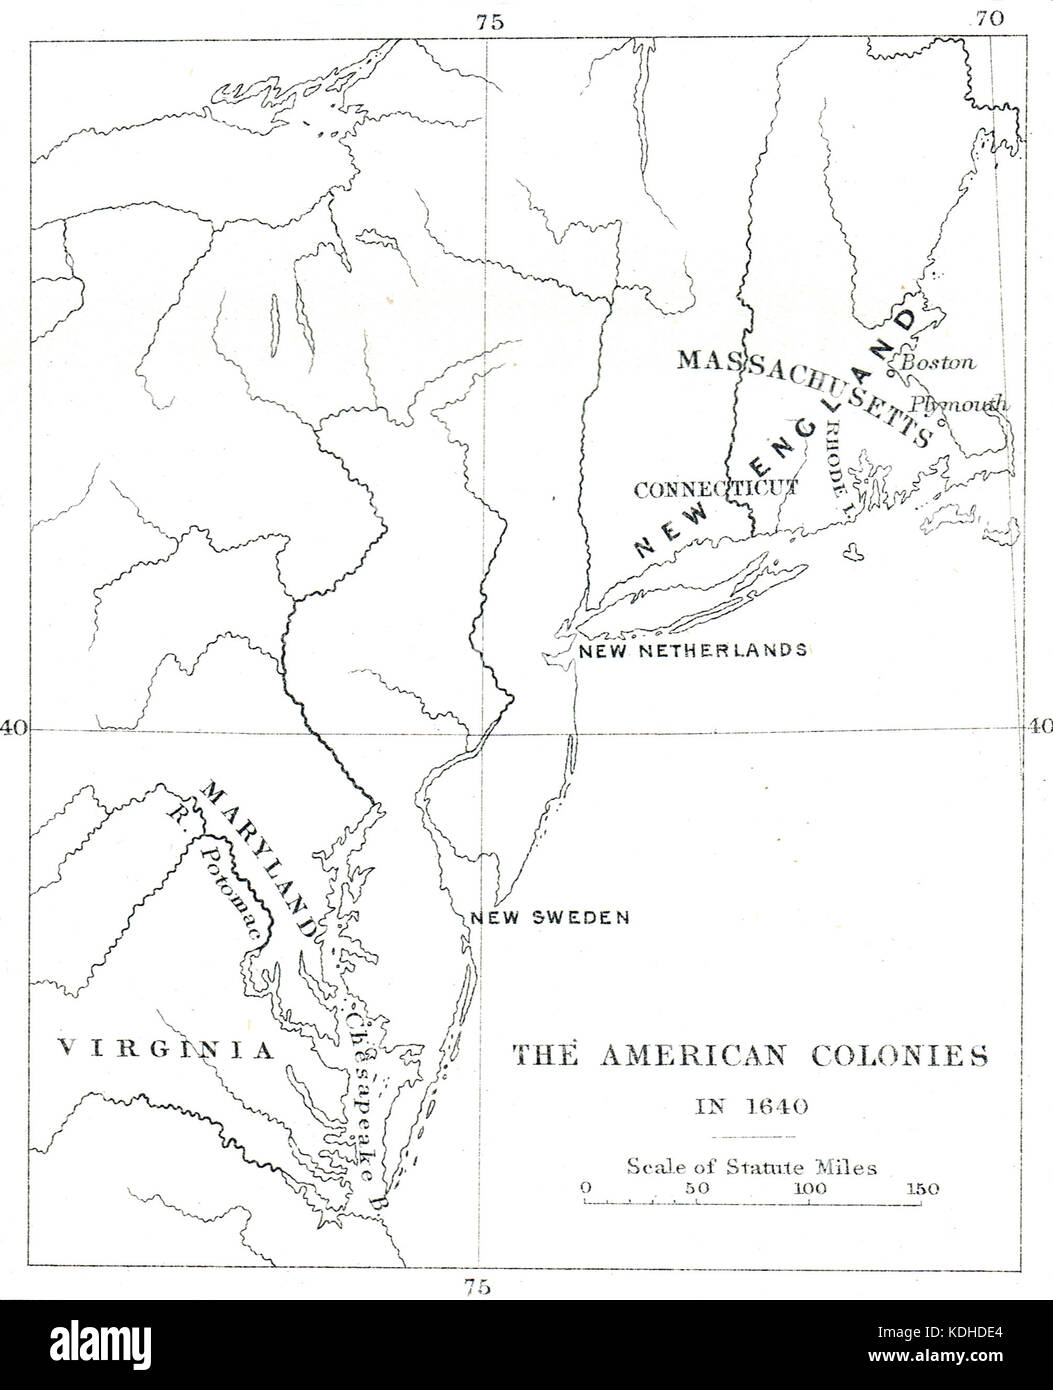 Map of the American colonies in 1640, European Colonies (New England, New Sweden & New Netherlands) of North - Stock Image